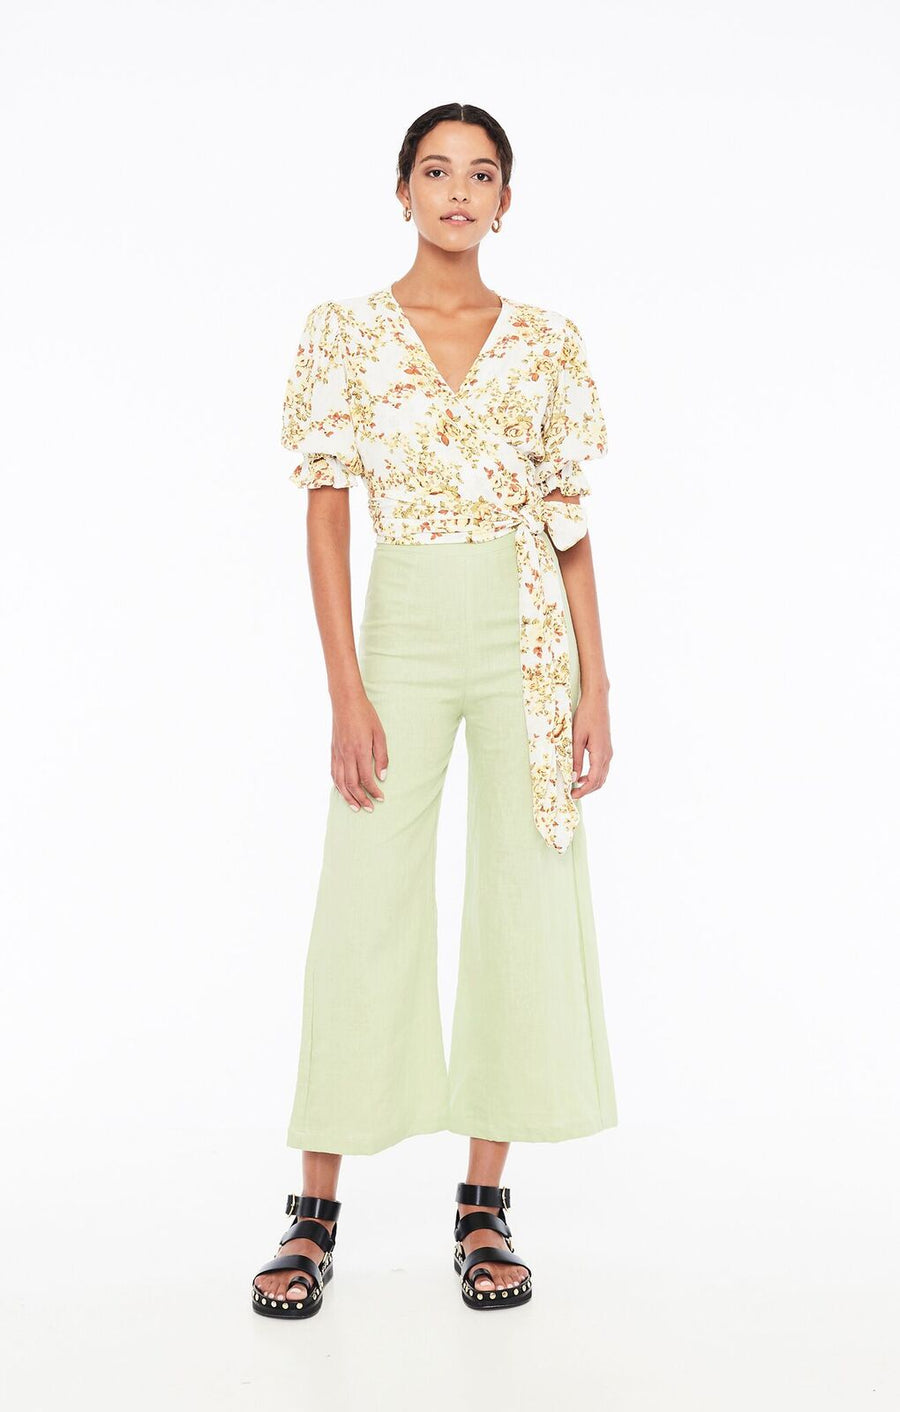 FAITHFULL THE BRAND - MALI WRAP TOP - GOLDIE FLORAL